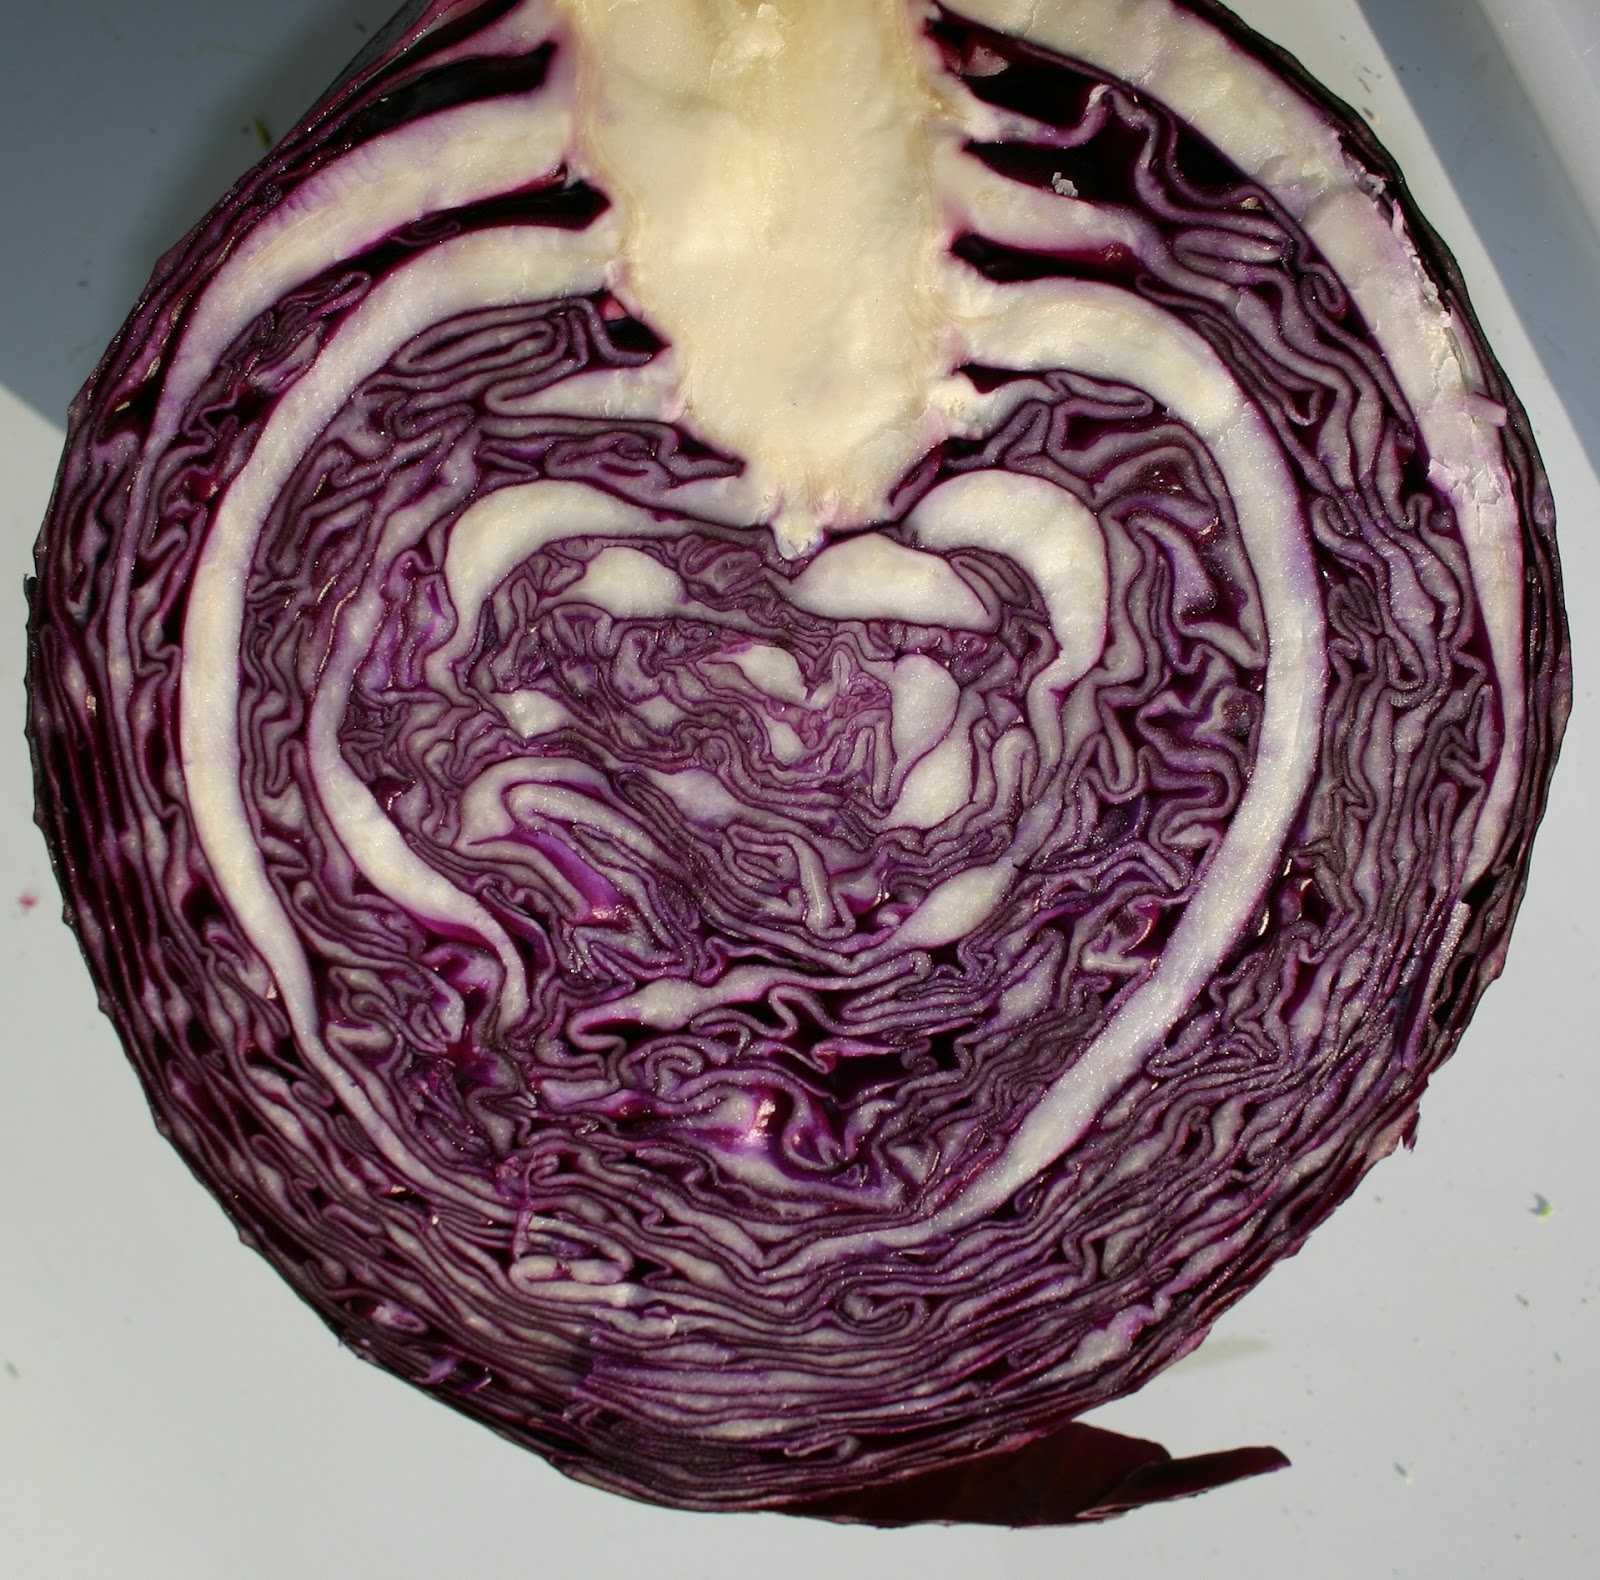 A head of purple cabbage sliced in half.